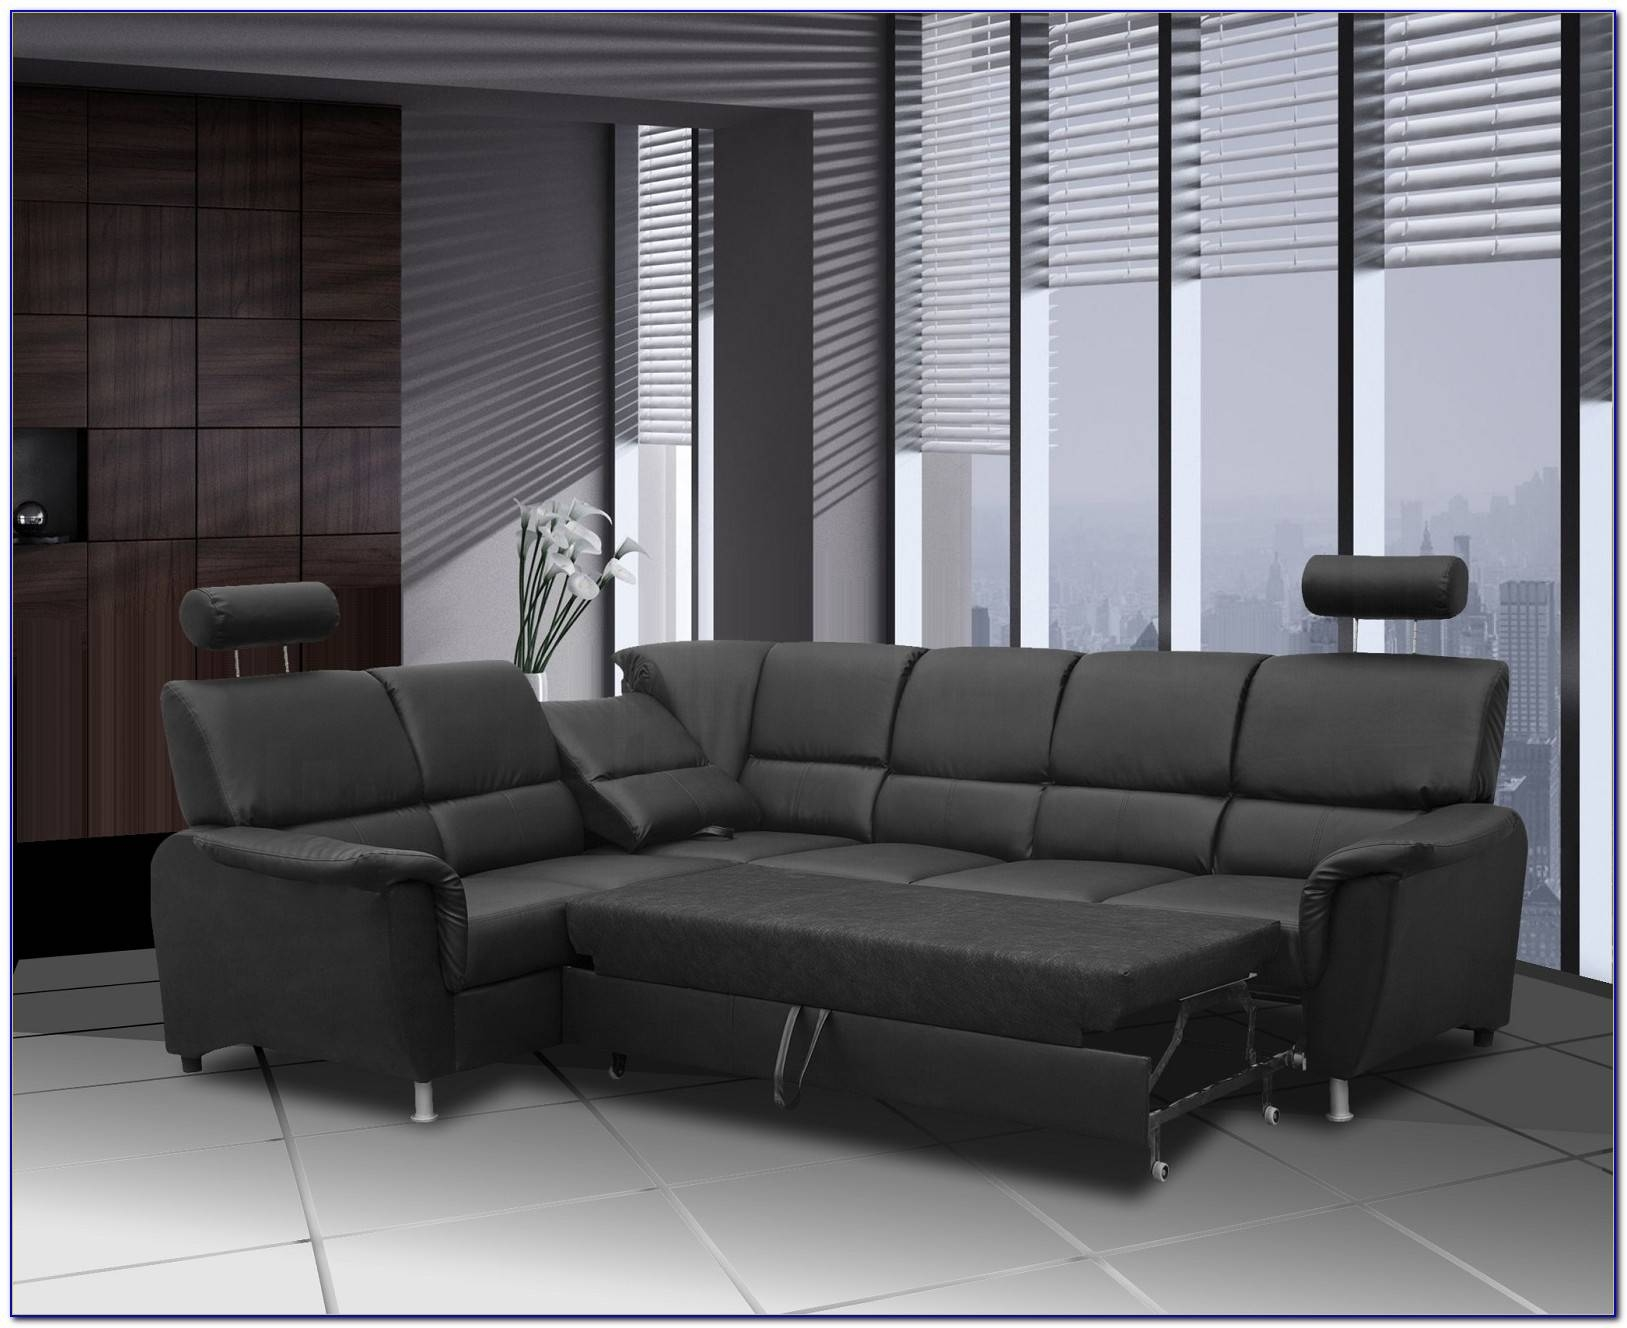 Leather Sectional Sofas San Diego - Cleanupflorida intended for Sectional Sofa San Diego (Image 14 of 30)